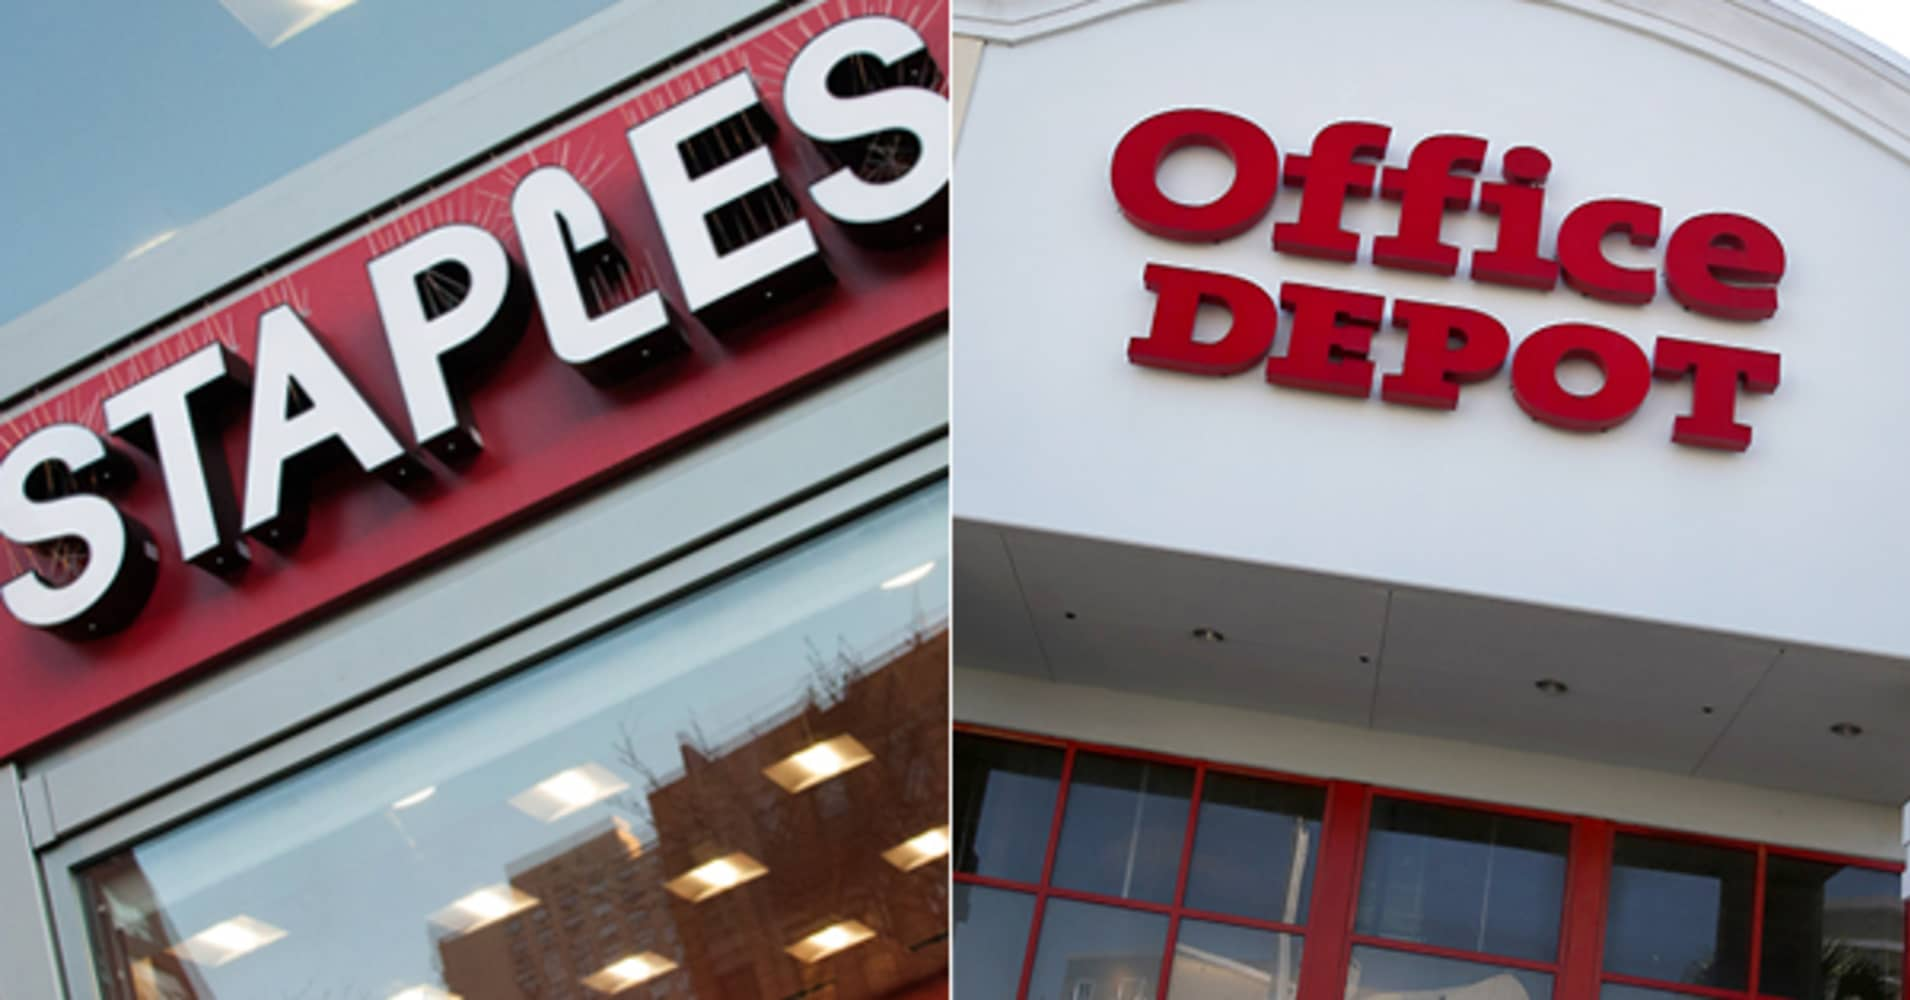 staples office depot tank on failed merger. Black Bedroom Furniture Sets. Home Design Ideas